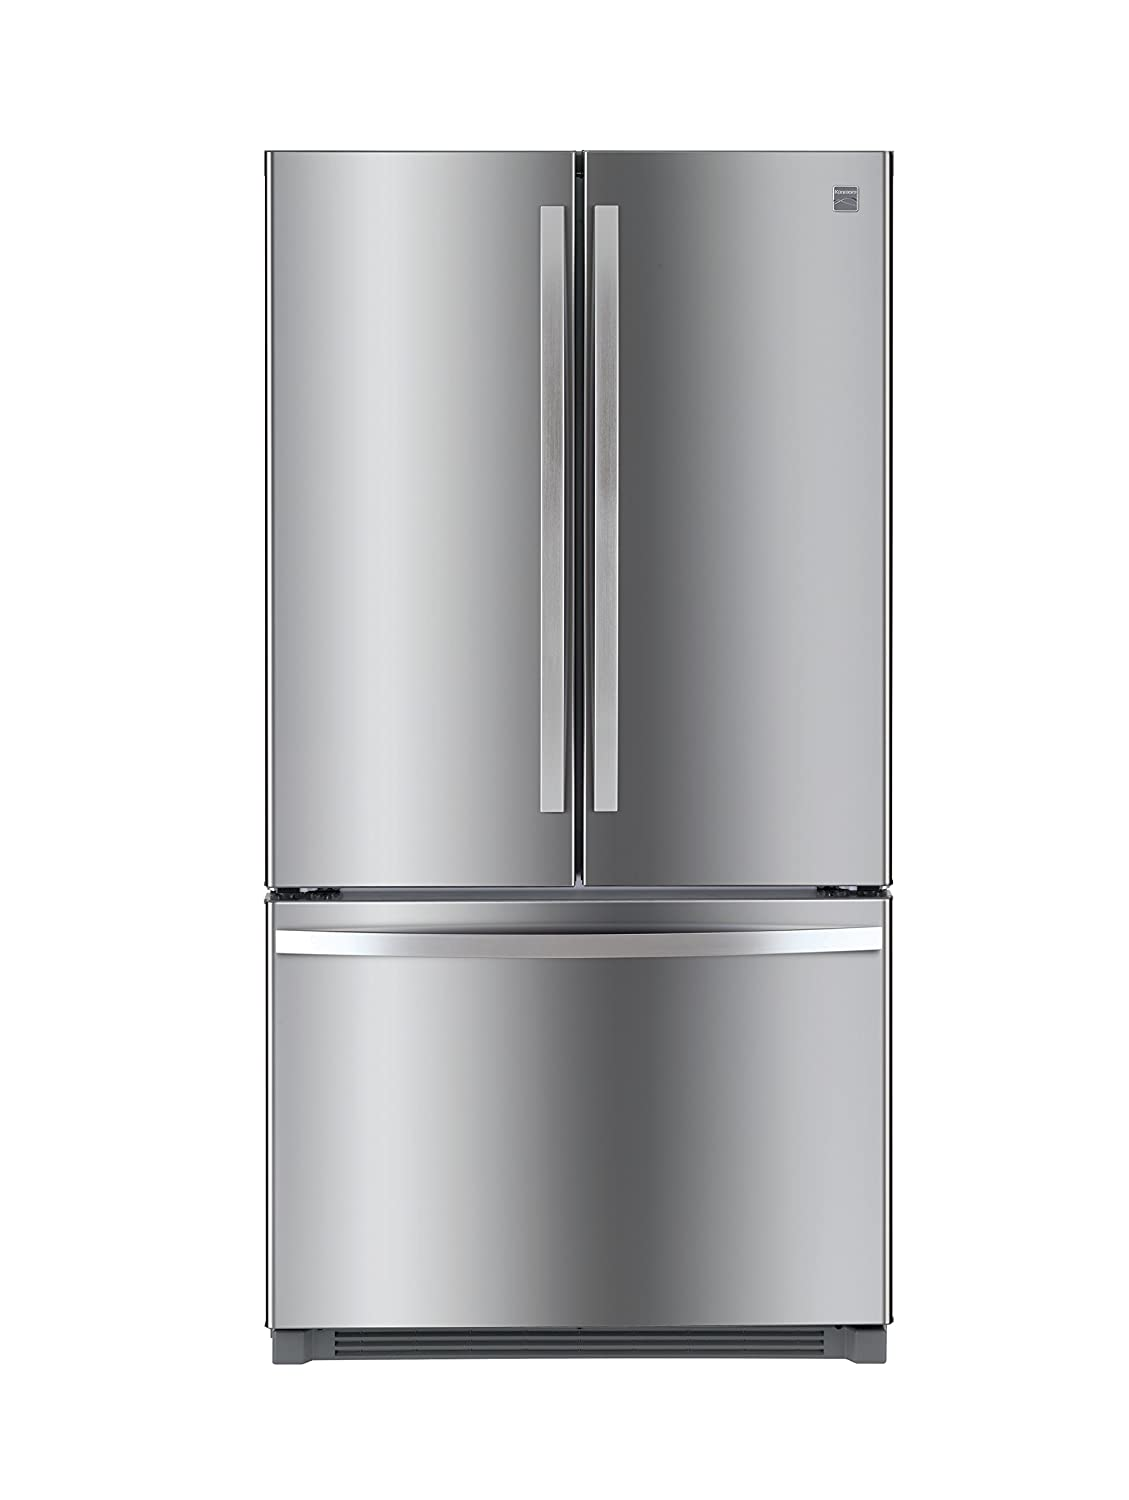 Kenmore 73025 26.1 Cu. Ft. Non Dispense French Door Refrigerator In Stainless Steel With Active Finish, Includes Delivery And Hookup by Kenmore